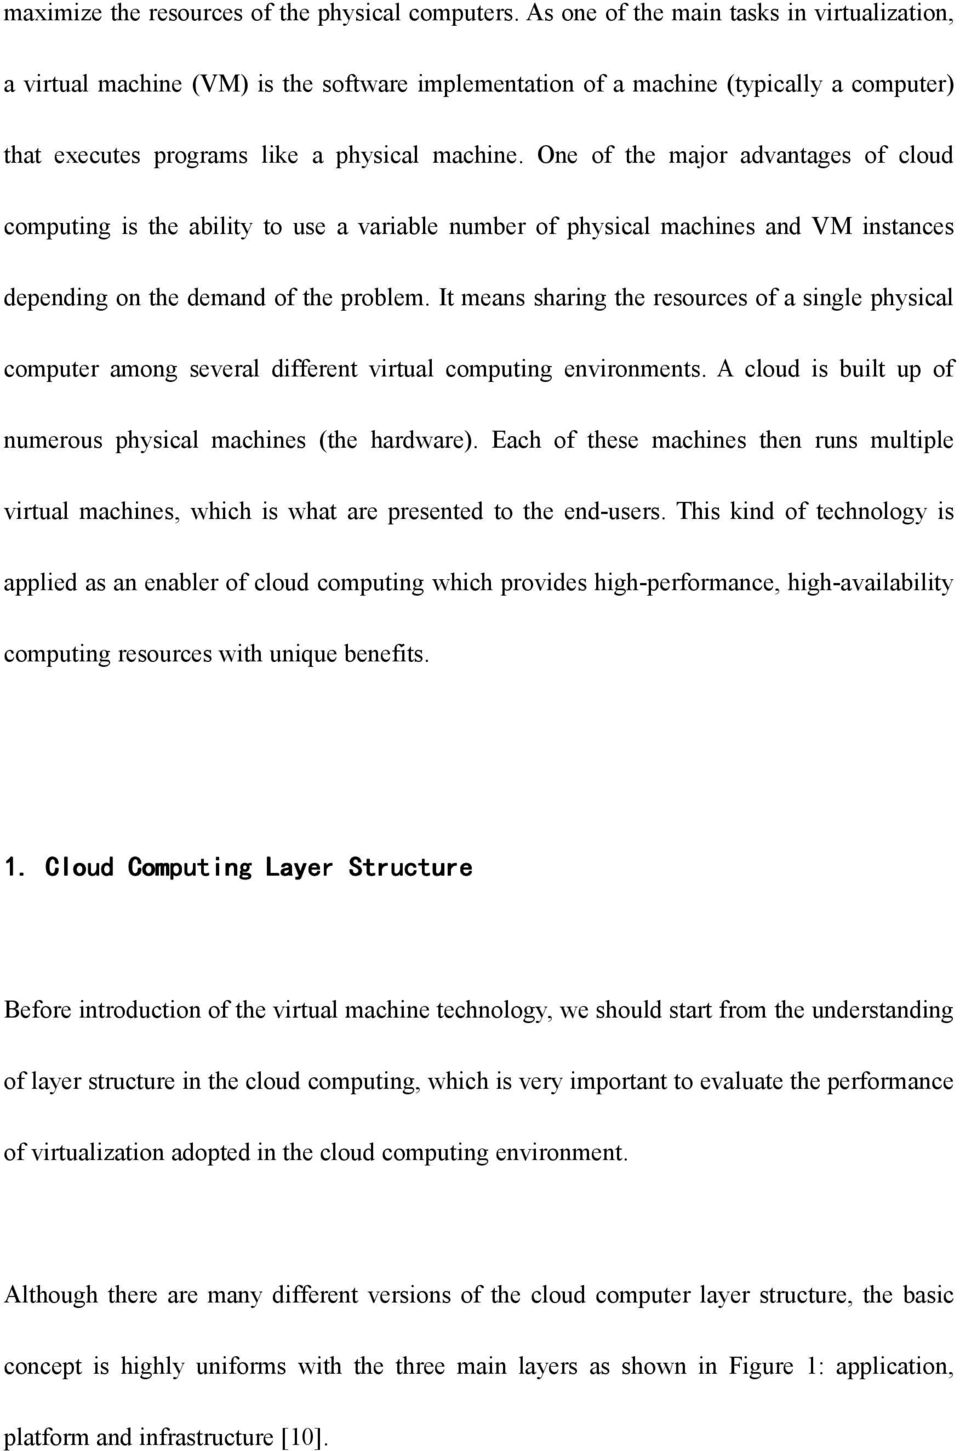 One of the major advantages of cloud computing is the ability to use a variable number of physical machines and VM instances depending on the demand of the problem.